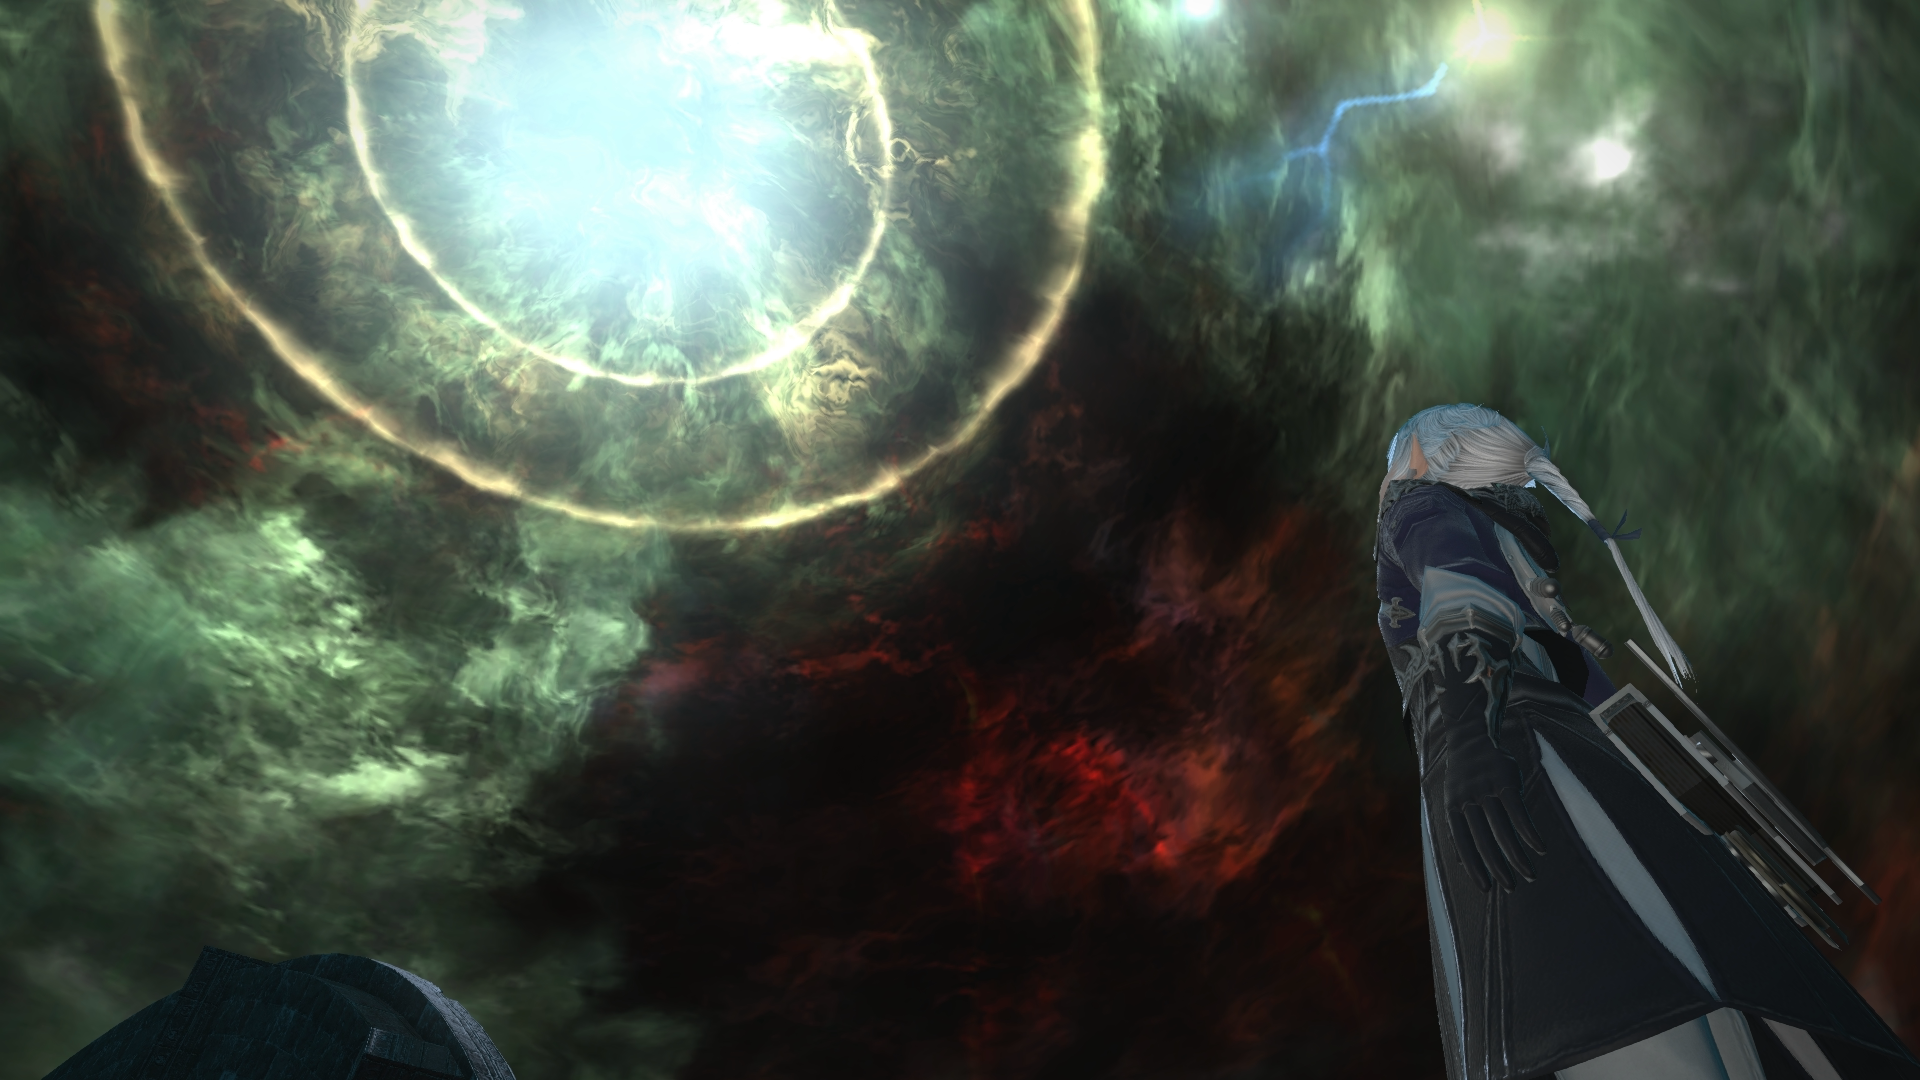 More Details about Final Fantasy XIV's 3.3 Update